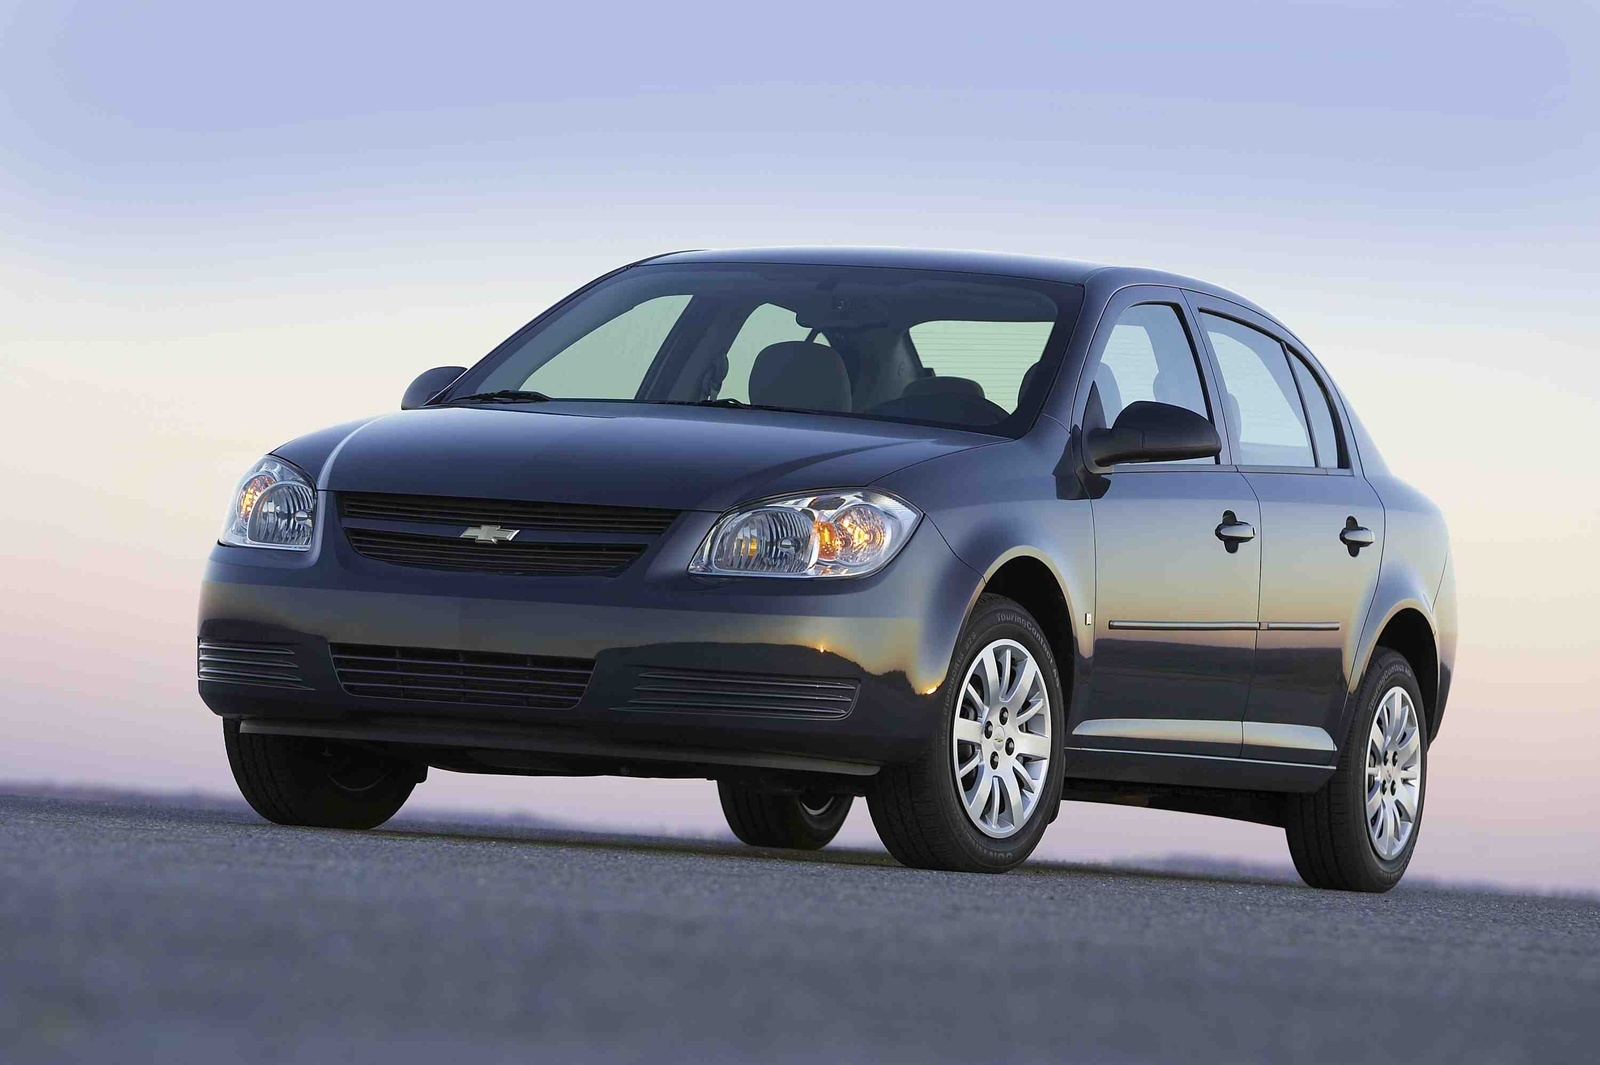 2010 Chevrolet Cobalt Review Cargurus